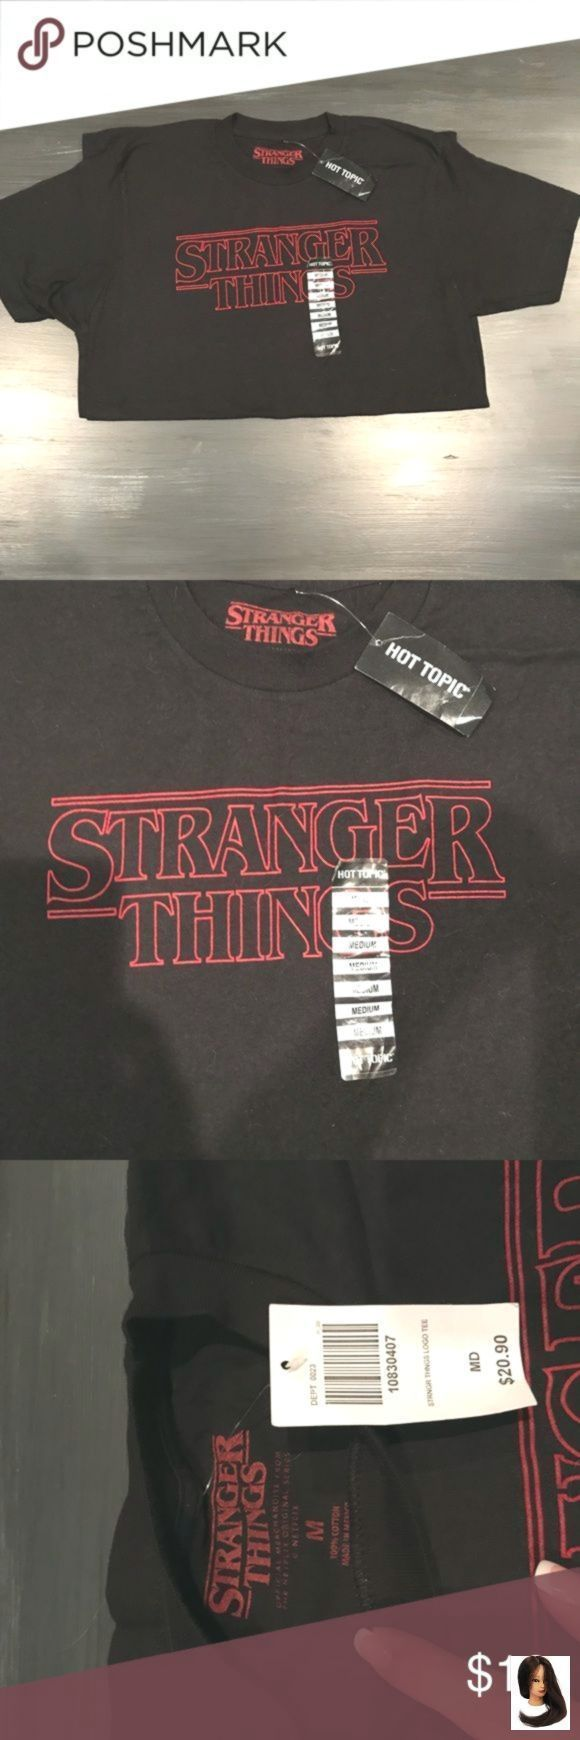 #hottopicclothes #stranger #clothes #things #tshirt #ideas #black #topic #from #size #new #hot #t #mHot Topic Stranger Things T-shirt size m Black t-shirt from Hot Topic Stranger T - New Ideas Hot Topic Stranger Things T-shirt size m Black t-shirt from Hot Topic Stranger T        Things clothesHot Topic Stranger Things T-shirt size m Black t-shirt from Hot Topic Stranger T - New Ideas Hot Topic Stranger Things T-shirt size m Black t-shirt from Hot Topic Stranger T        Things clothes #hottopic #hottopicclothes